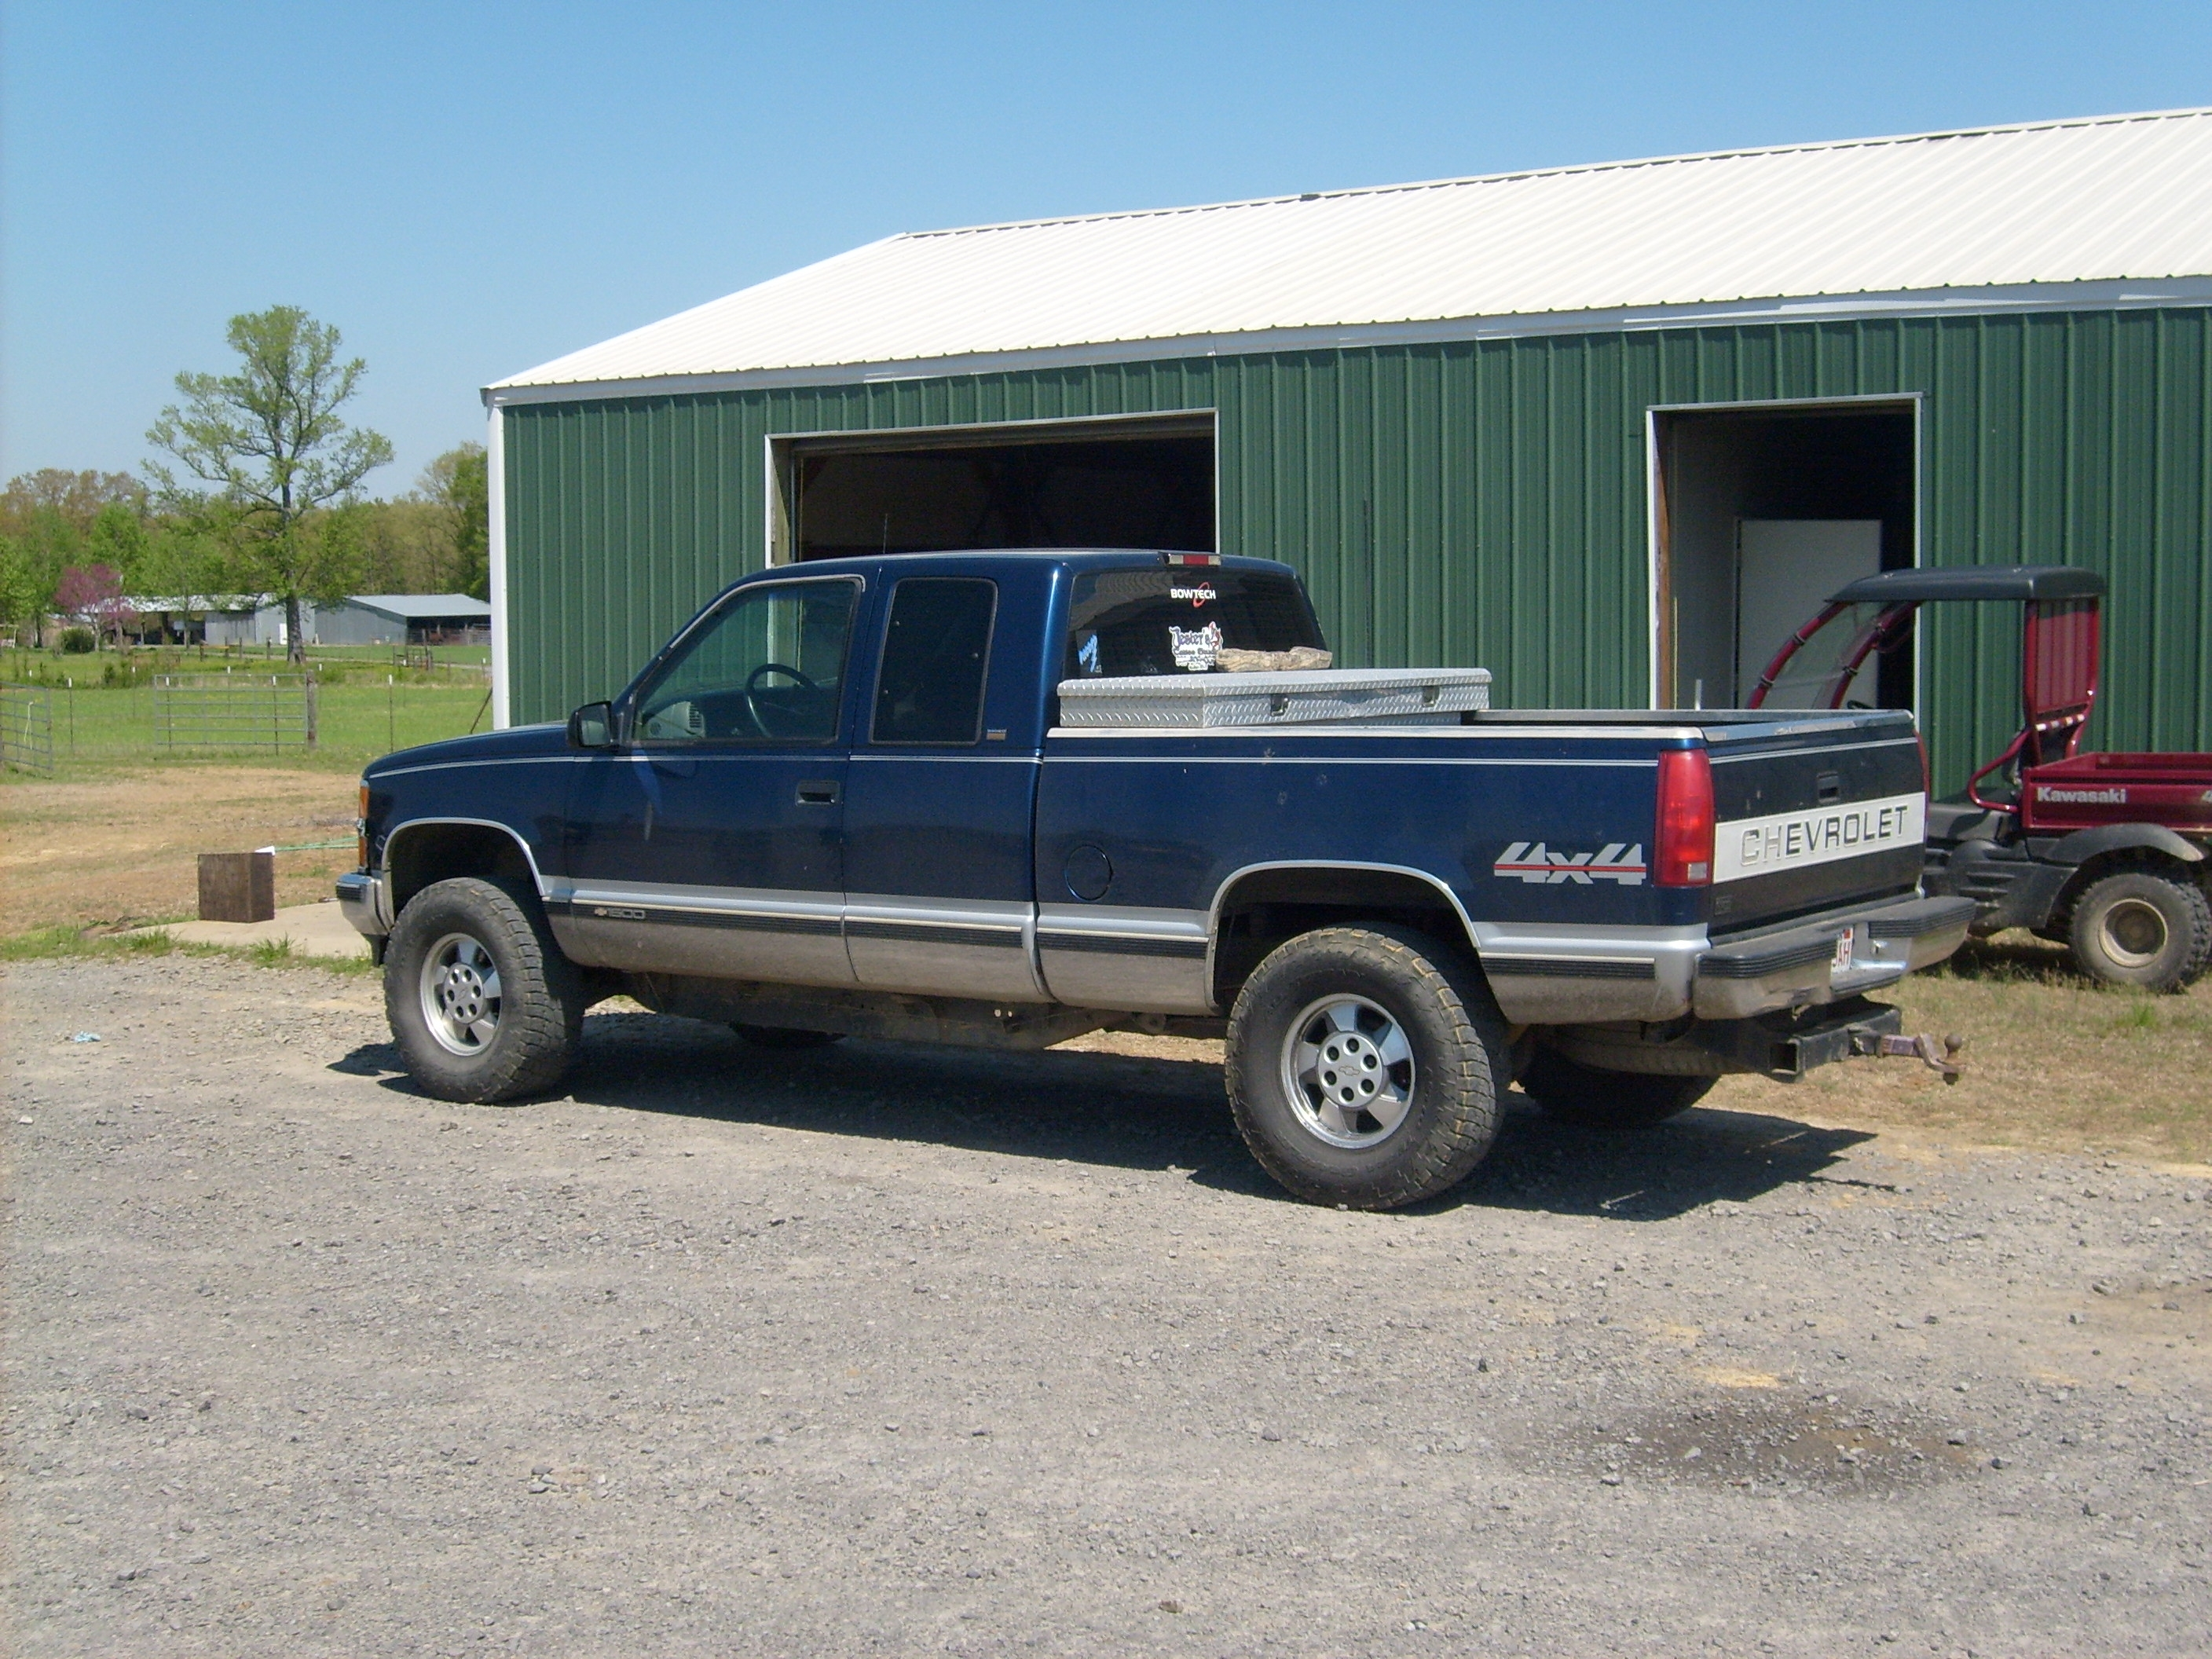 oleblue4405 1996 chevrolet silverado 1500 extended cab specs photos modification info at cardomain. Black Bedroom Furniture Sets. Home Design Ideas